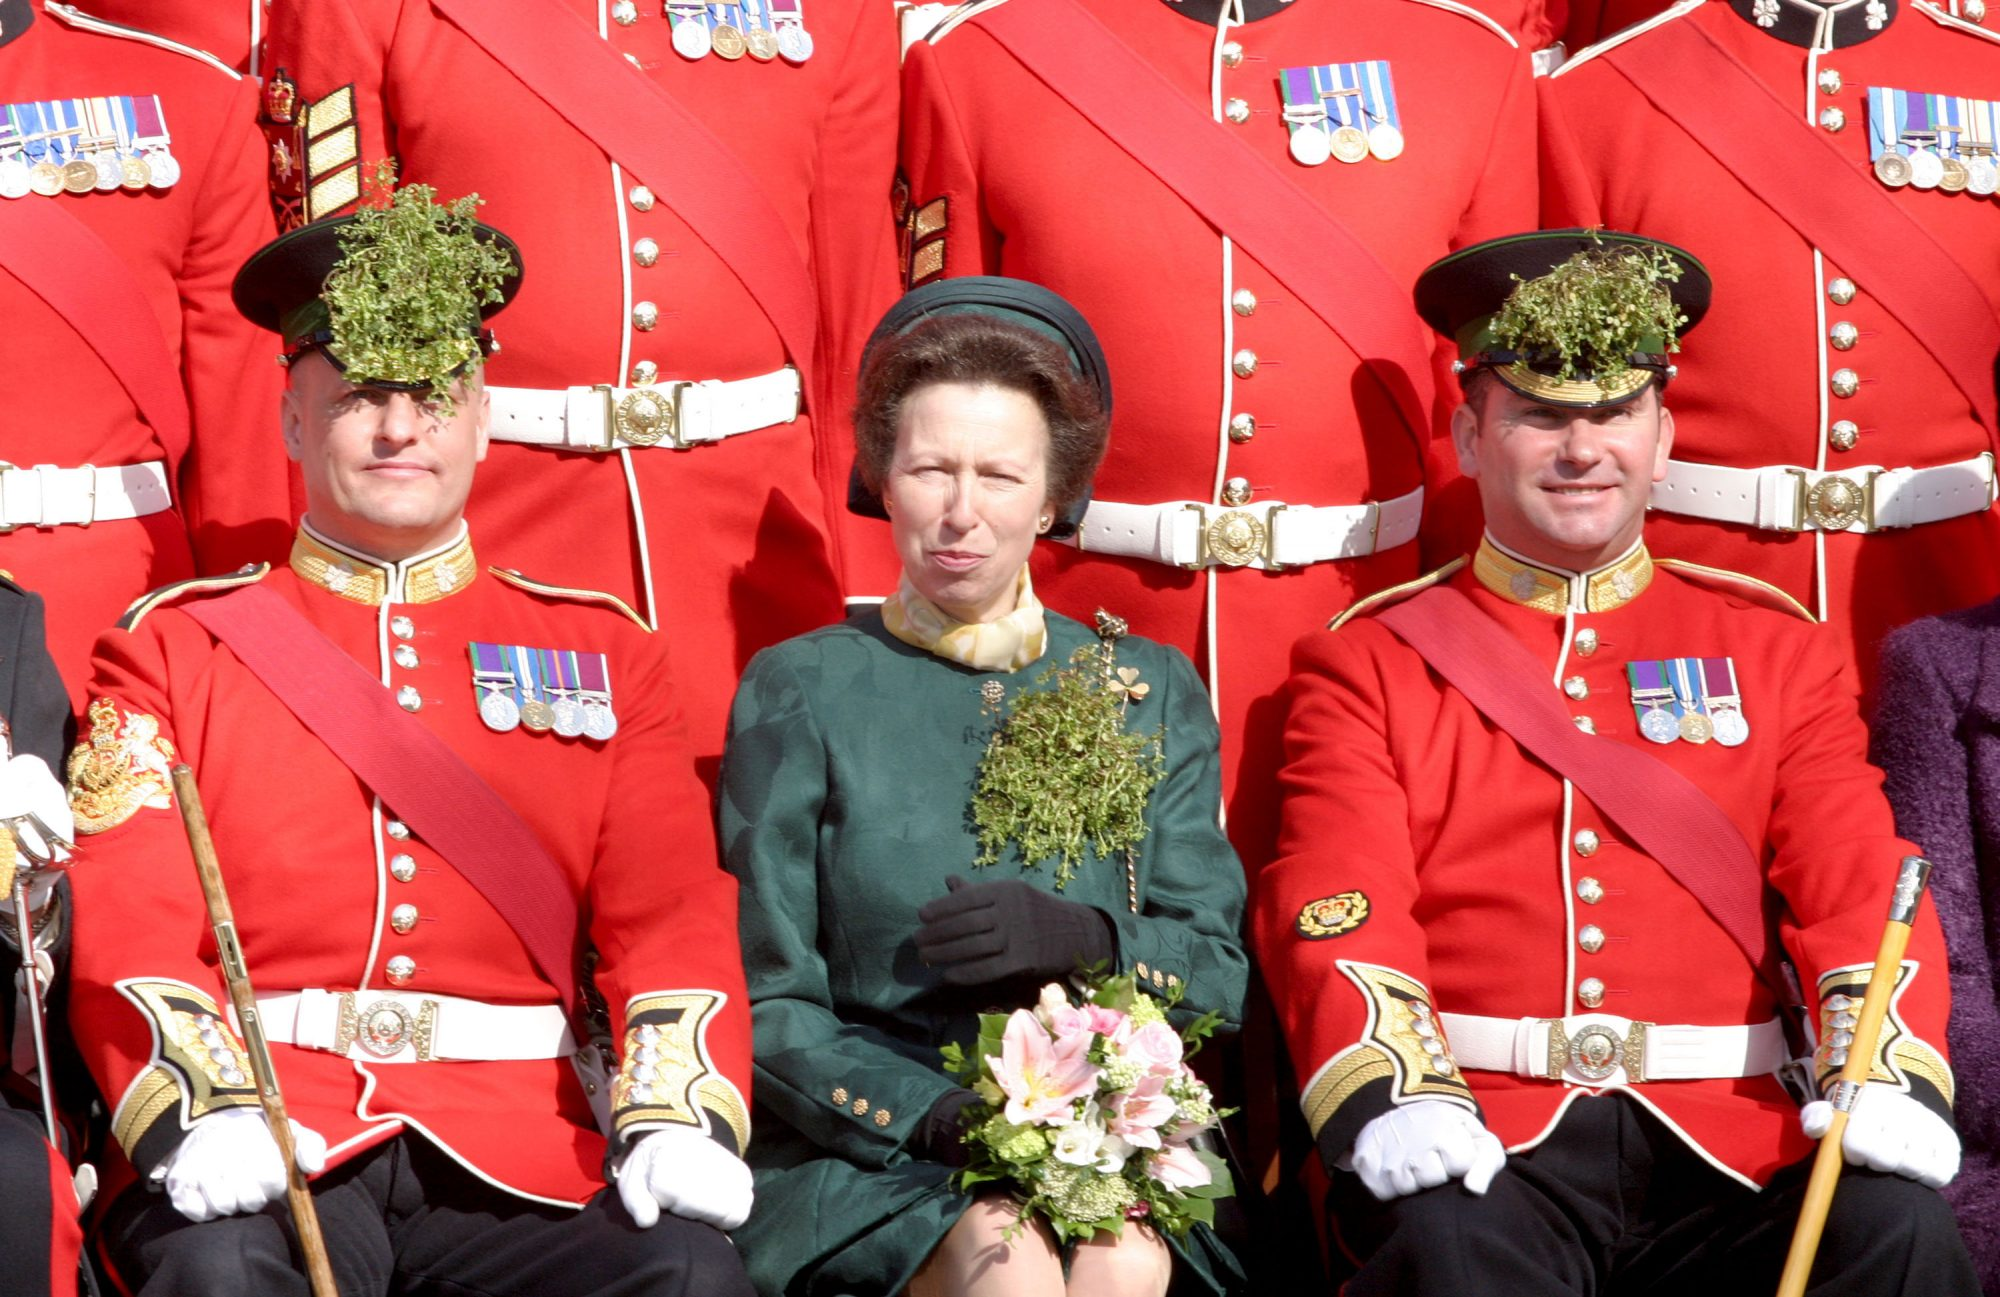 Princess Anne Shamrock Brooch